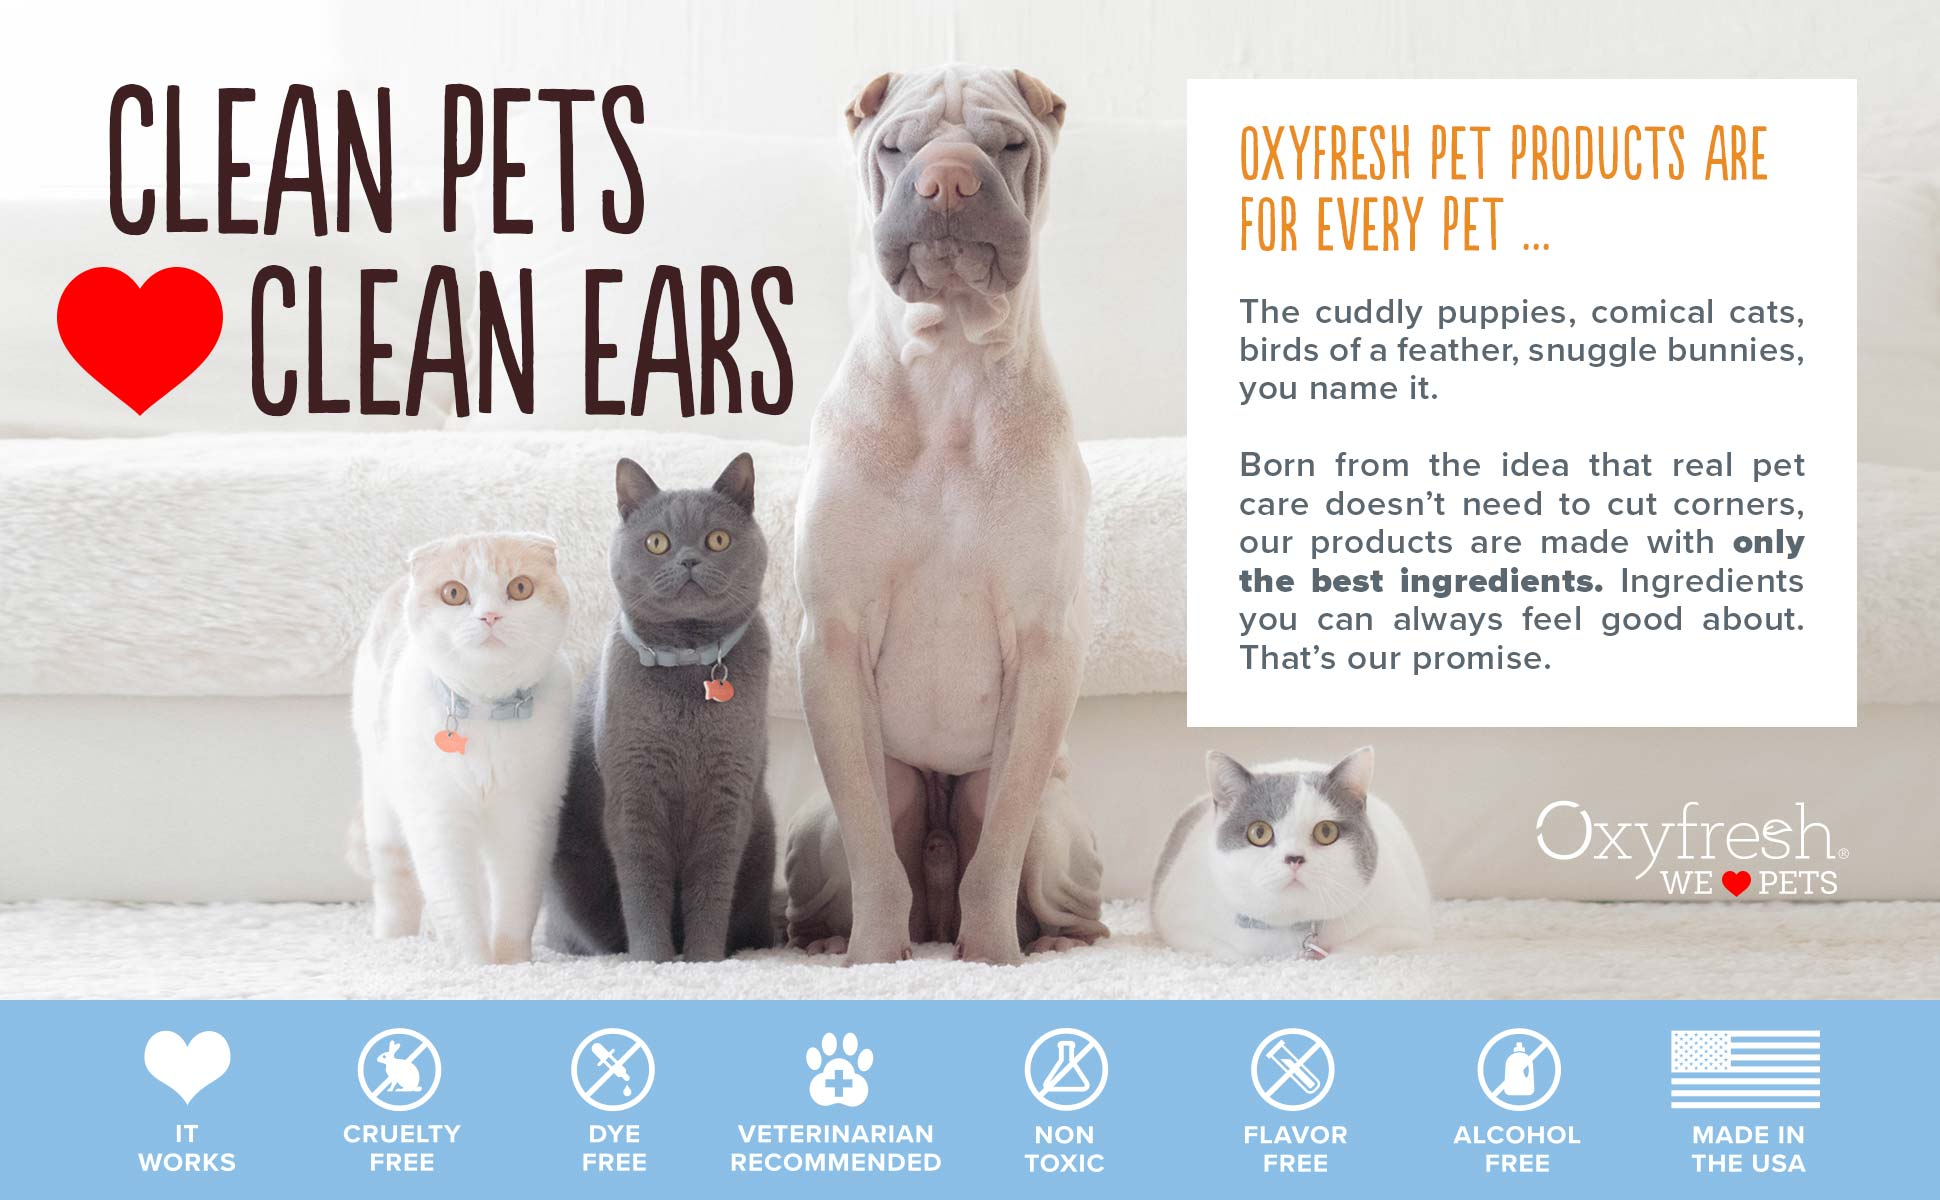 Oxyfresh - Clean pets love clean ears